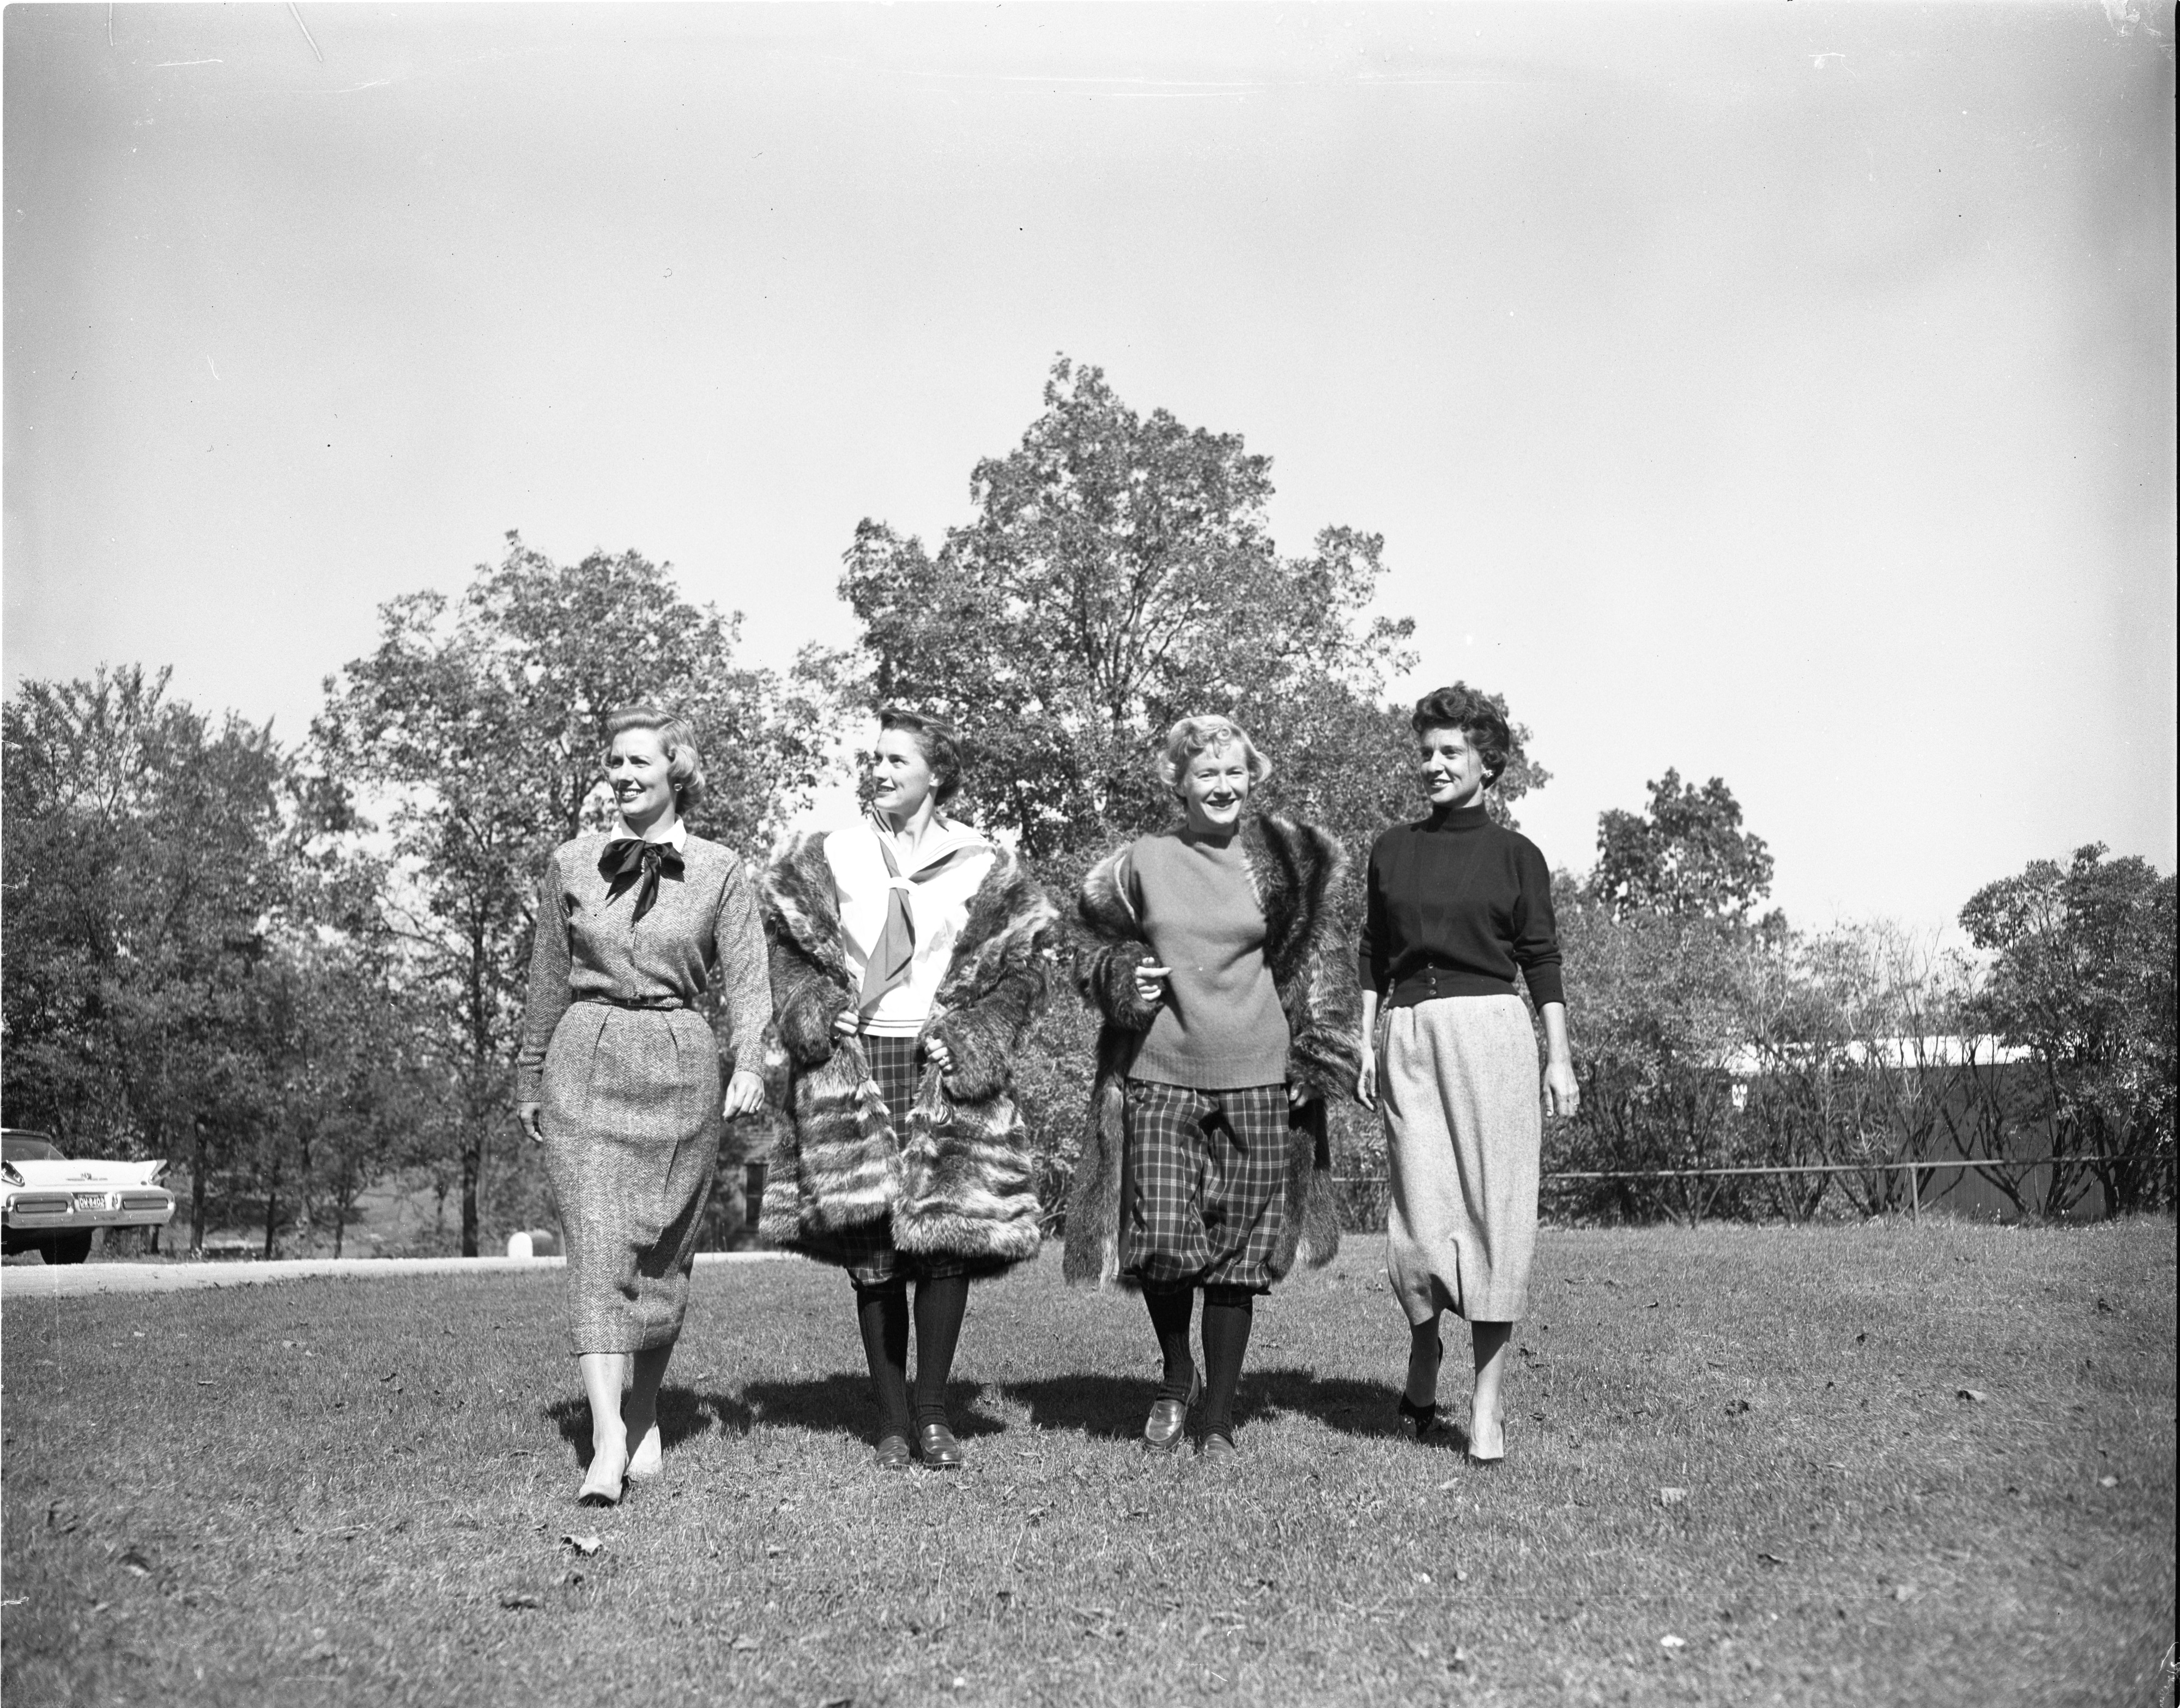 Fall Golf Fashions Modeled At Barton Hills Country Club, September 1957 image